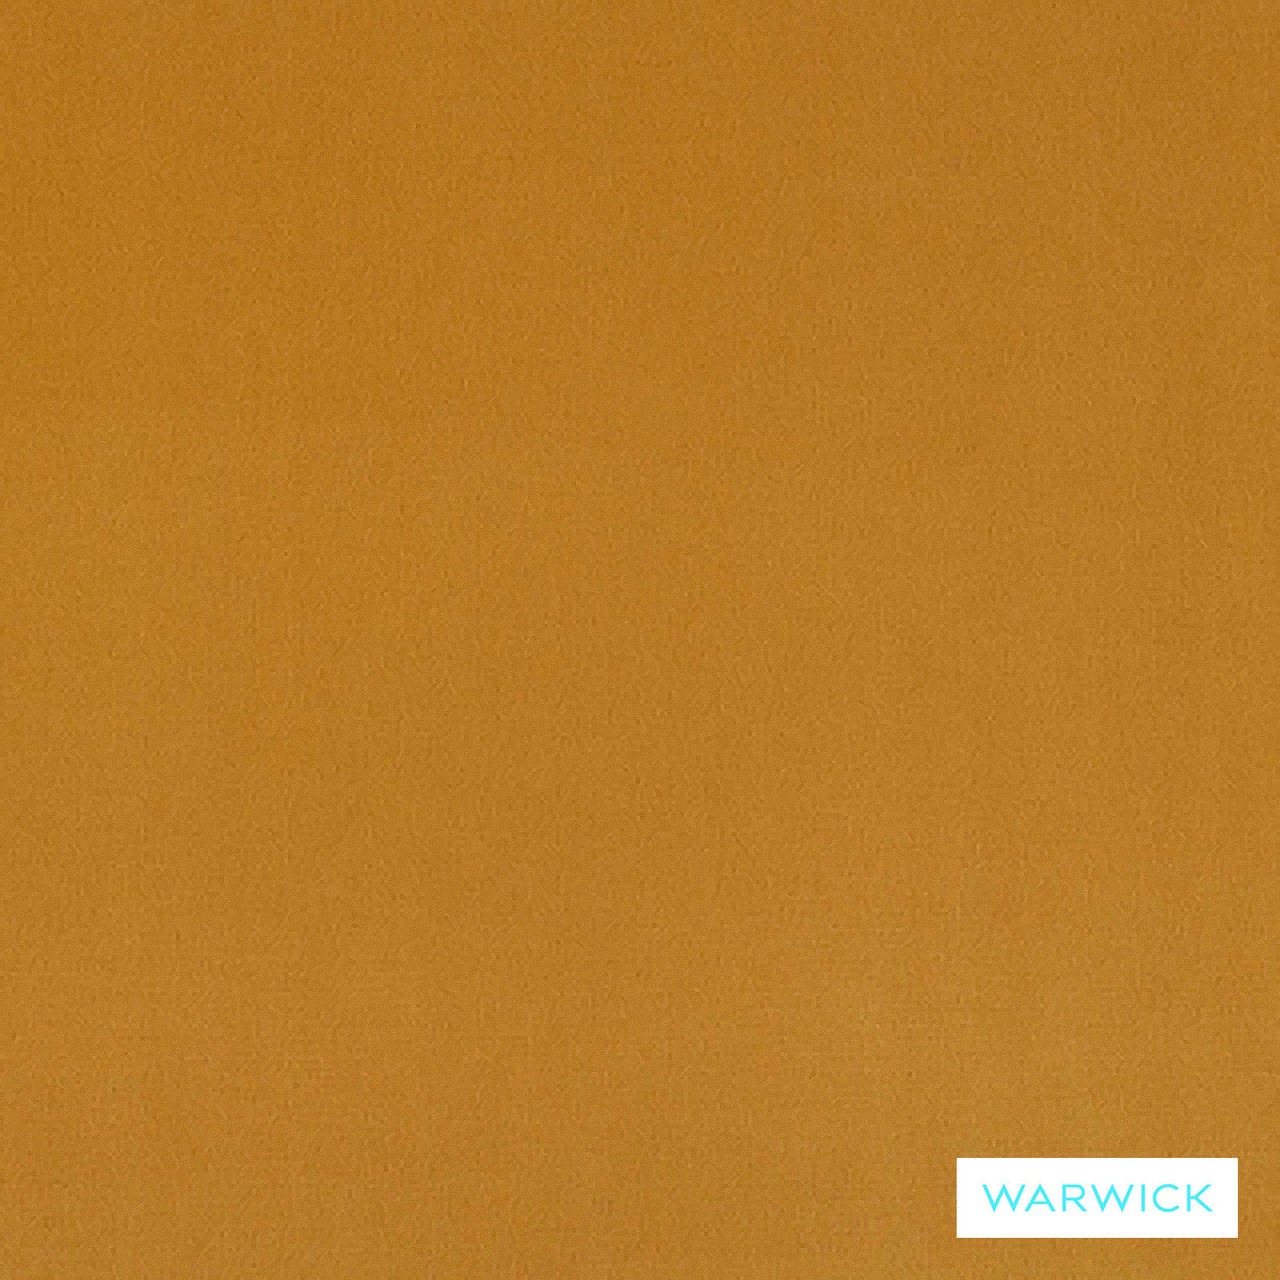 Warwick Plush Turmeric  | Upholstery Fabric - Plain, Synthetic, Washable, Commercial Use, Halo